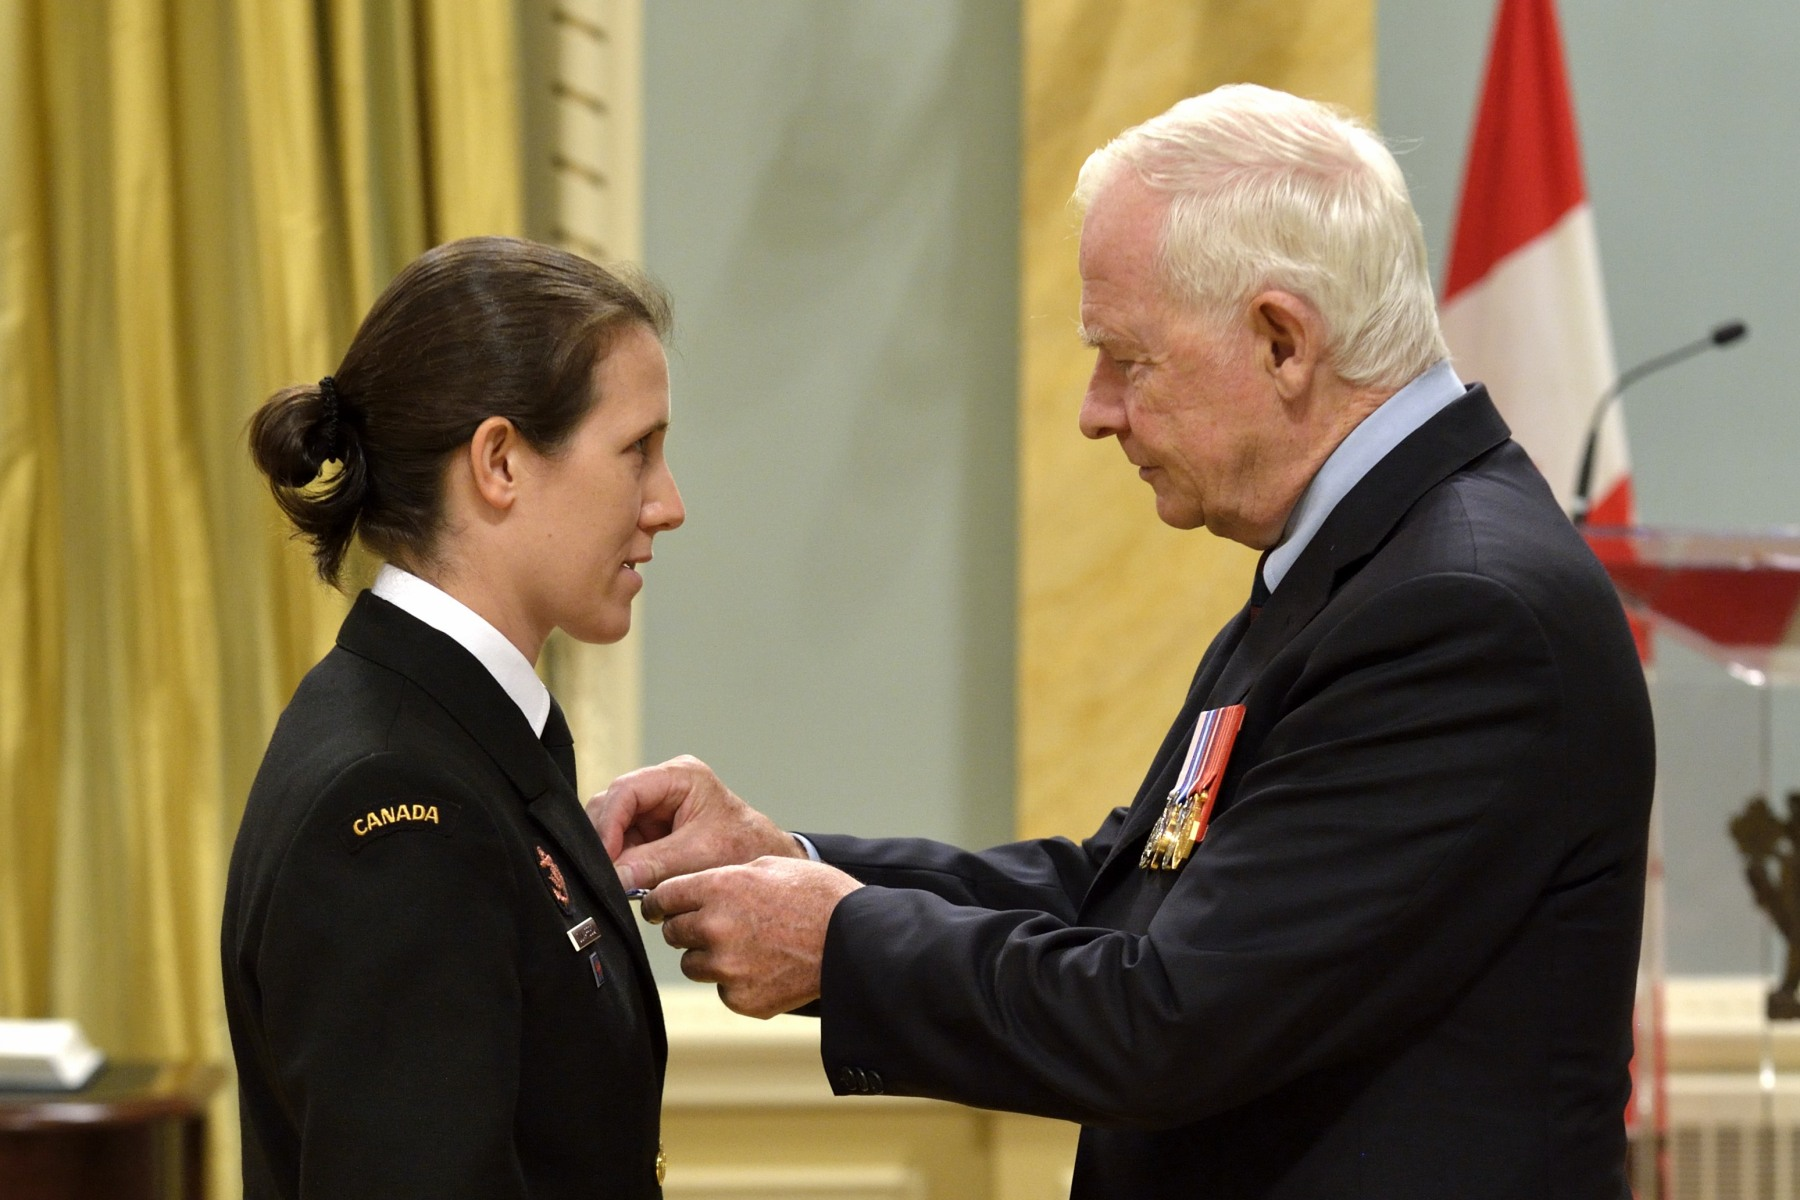 Sub-Lieutenant Michèle Claudette Dumaresq-Ouellet, M.S.M., C.D. (Montréal, Quebec) received the Meritorious Service Medal (Military Division). Sub-Lieutenant Dumaresq-Ouellet contributed to the success of operations of HMCS Toronto from 2008 to 2010. She served as senior electronic sensor operator, a position that went beyond the requirements of her rank and qualifications, and demonstrated remarkable innovation in developing new ship-to-shore warfare tactics. Sub-Lieutenant Dumaresq-Ouellet's leadership and professionalism were essential to the ship's operational success and brought honour to the Canadian Armed Forces.